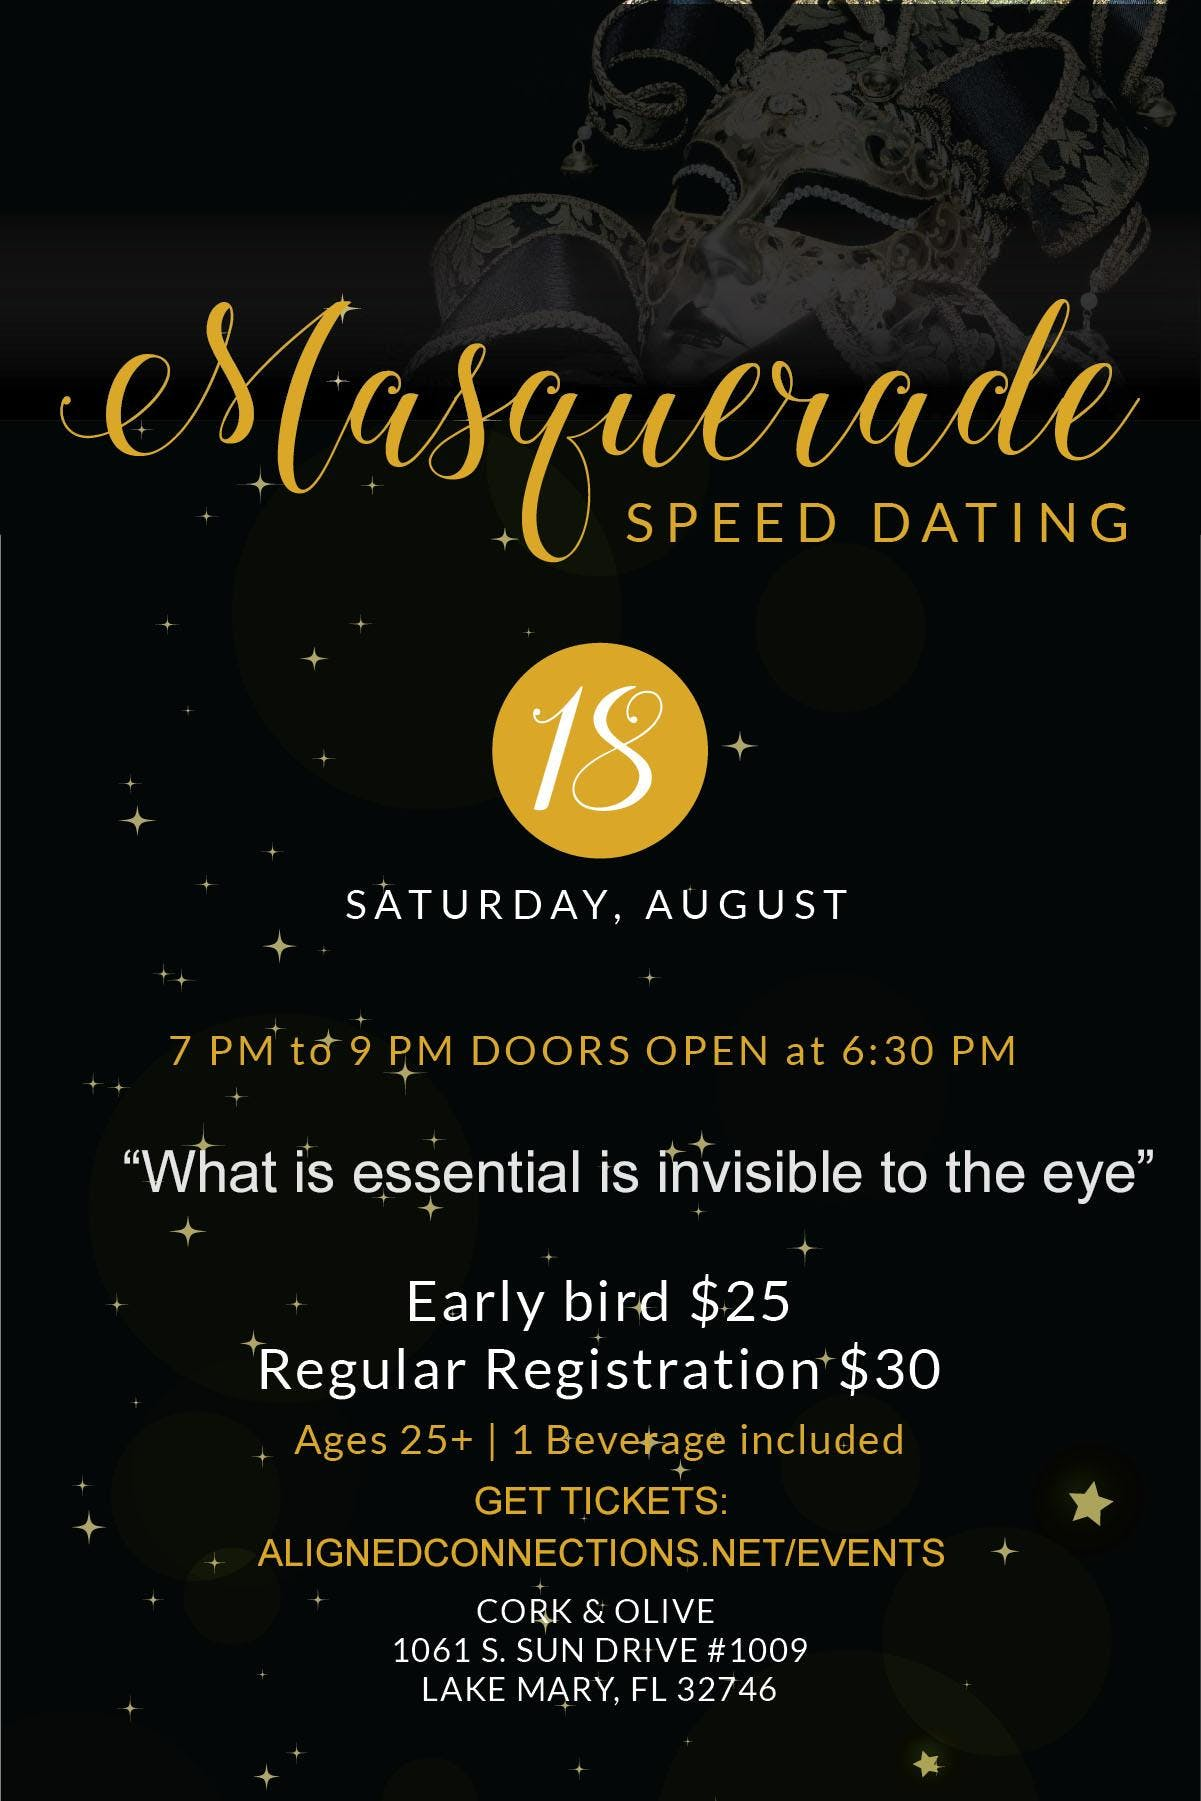 Under 18 speed dating